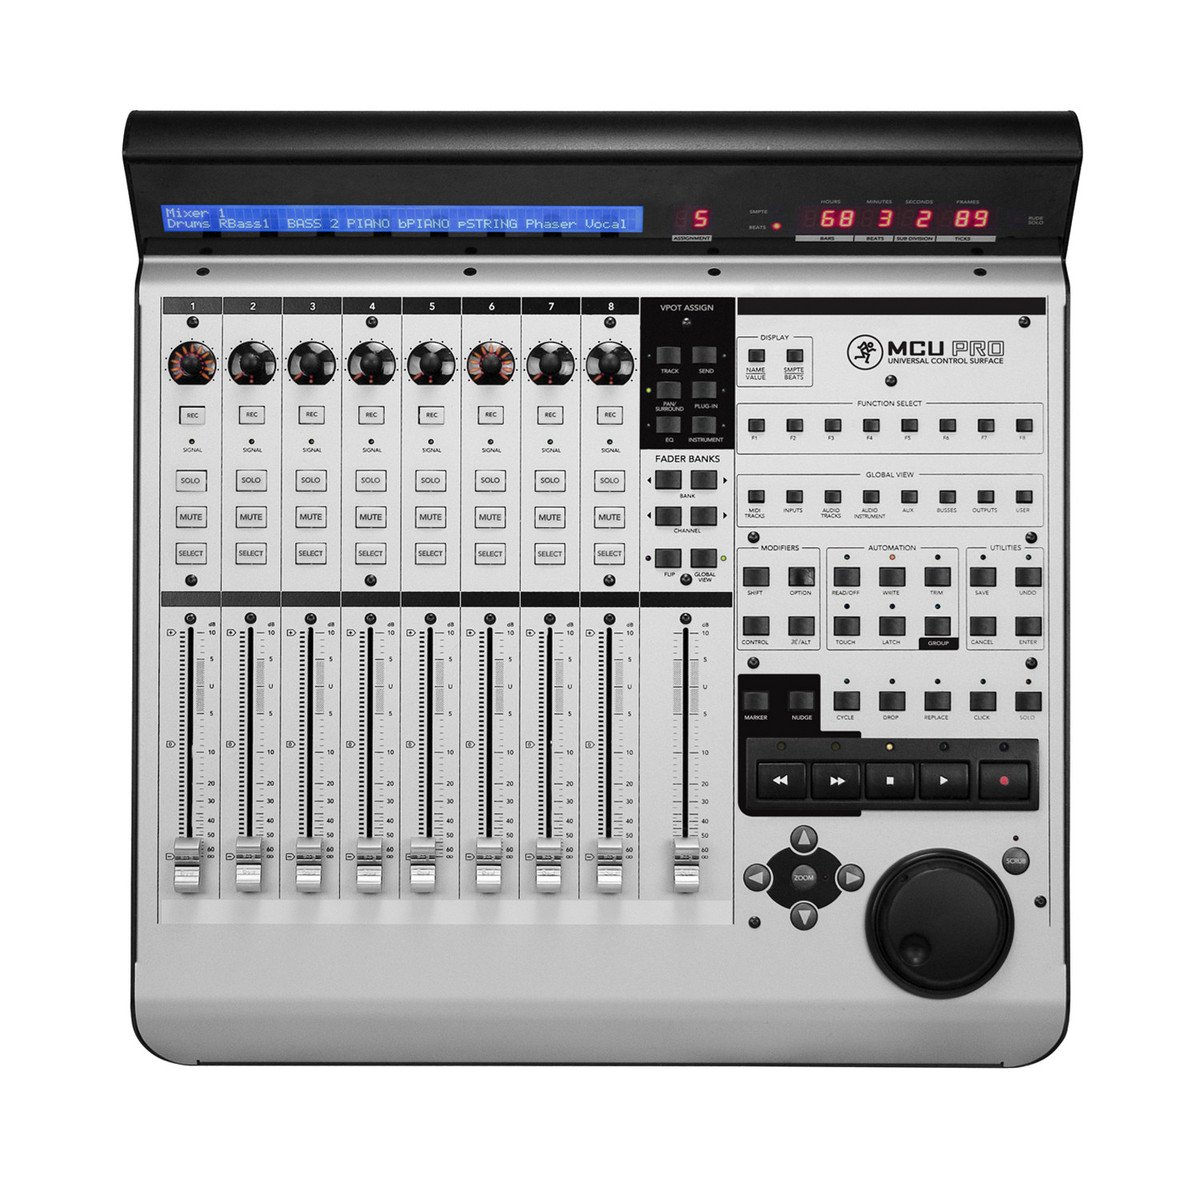 8-Channel DAW/NLE Control Surface